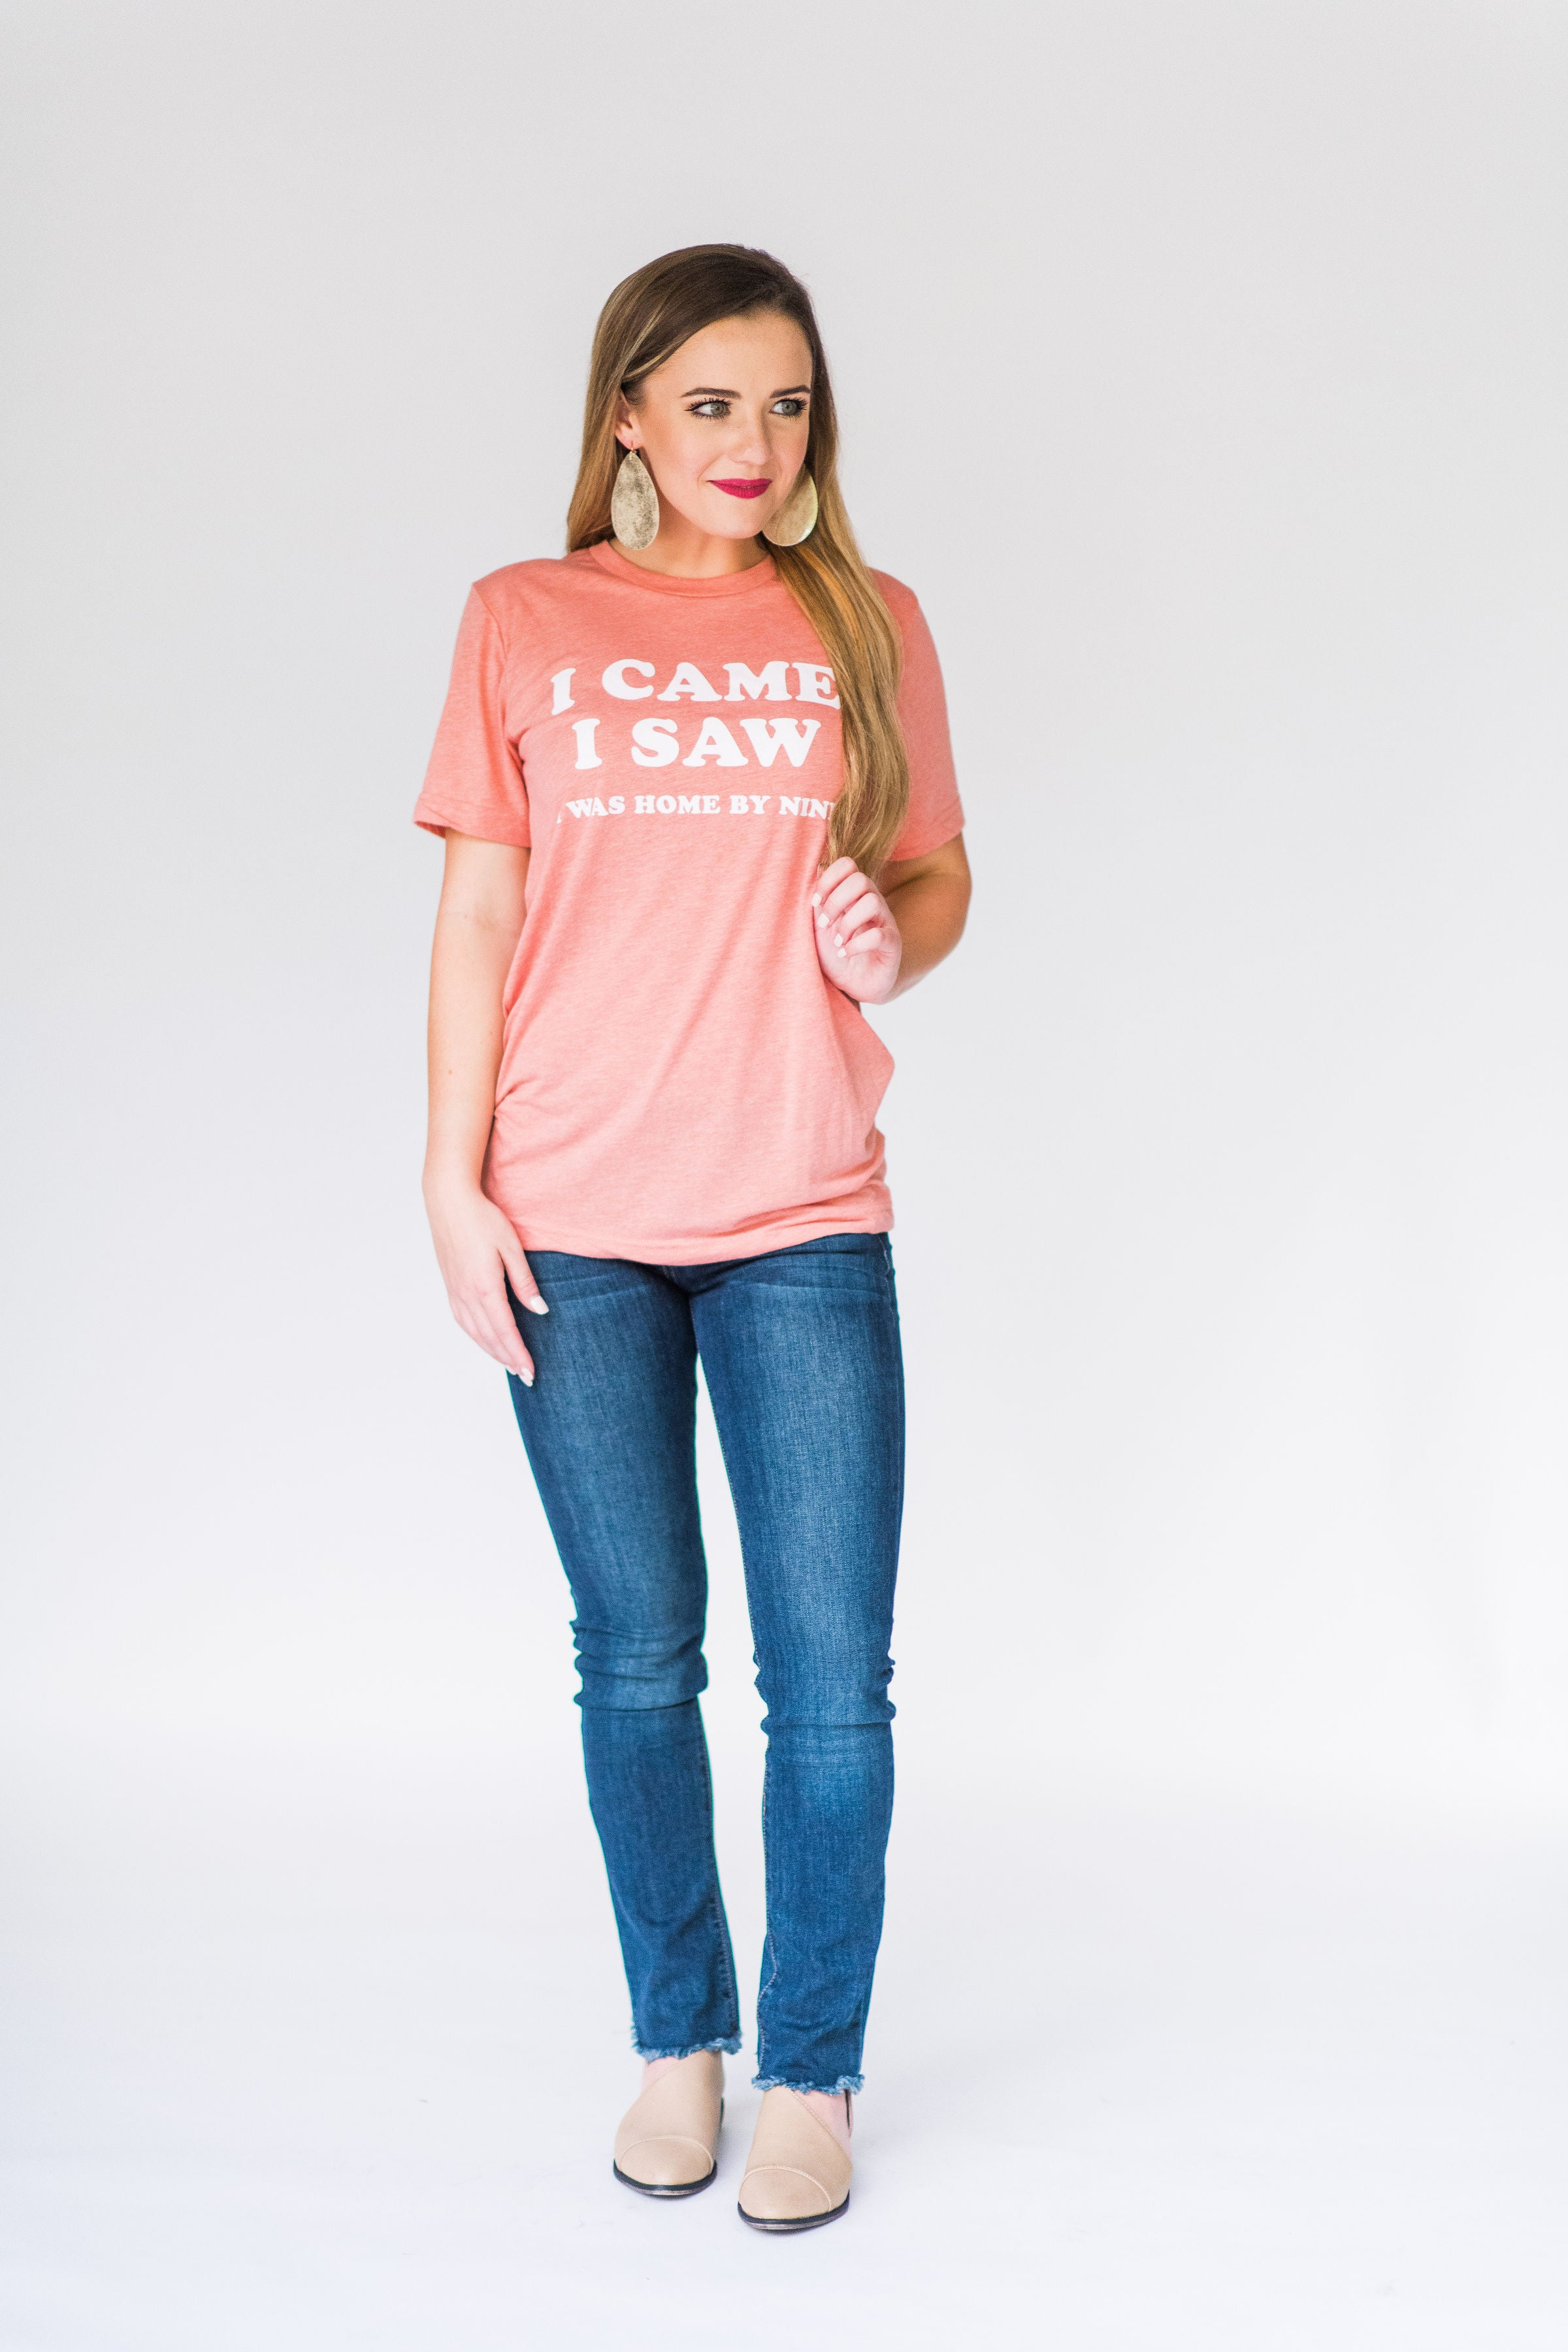 Friday + Saturday I Came I Saw I Was Home By Nine T-Shirt:  Peach